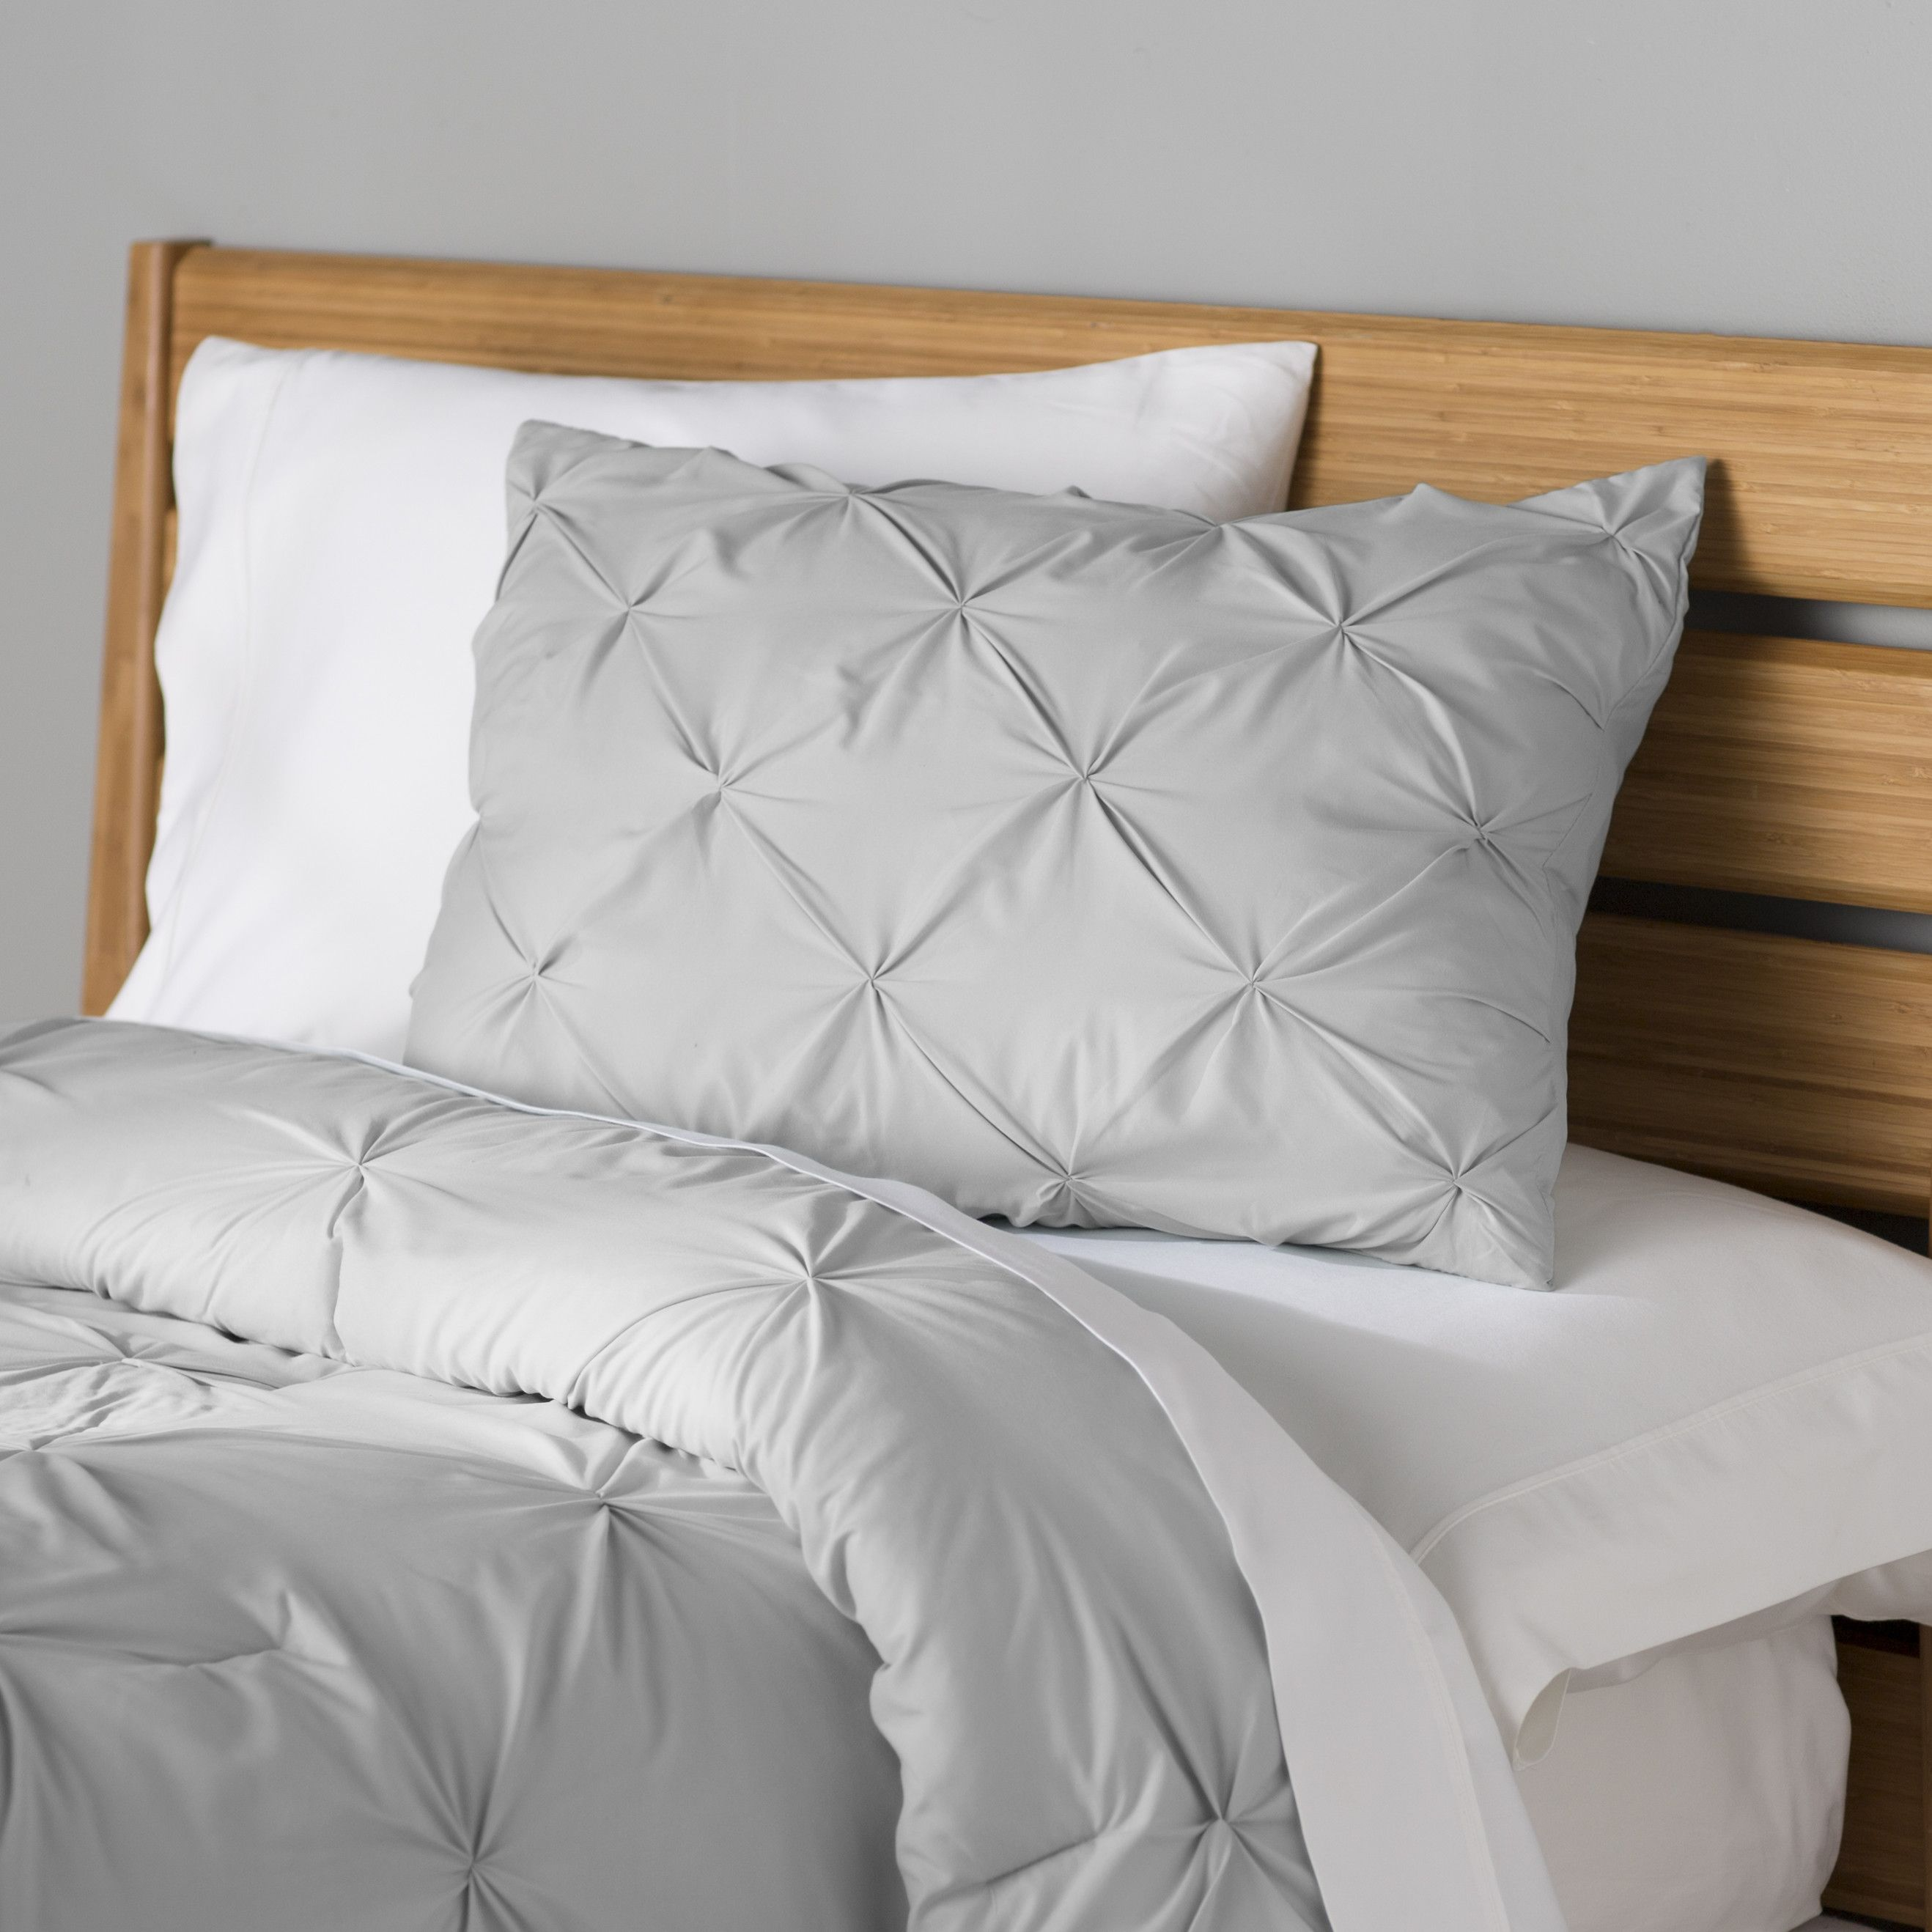 bedding set blue piece henri tufted free bath rouge madison shipping comforter sarah product overstock park maison today